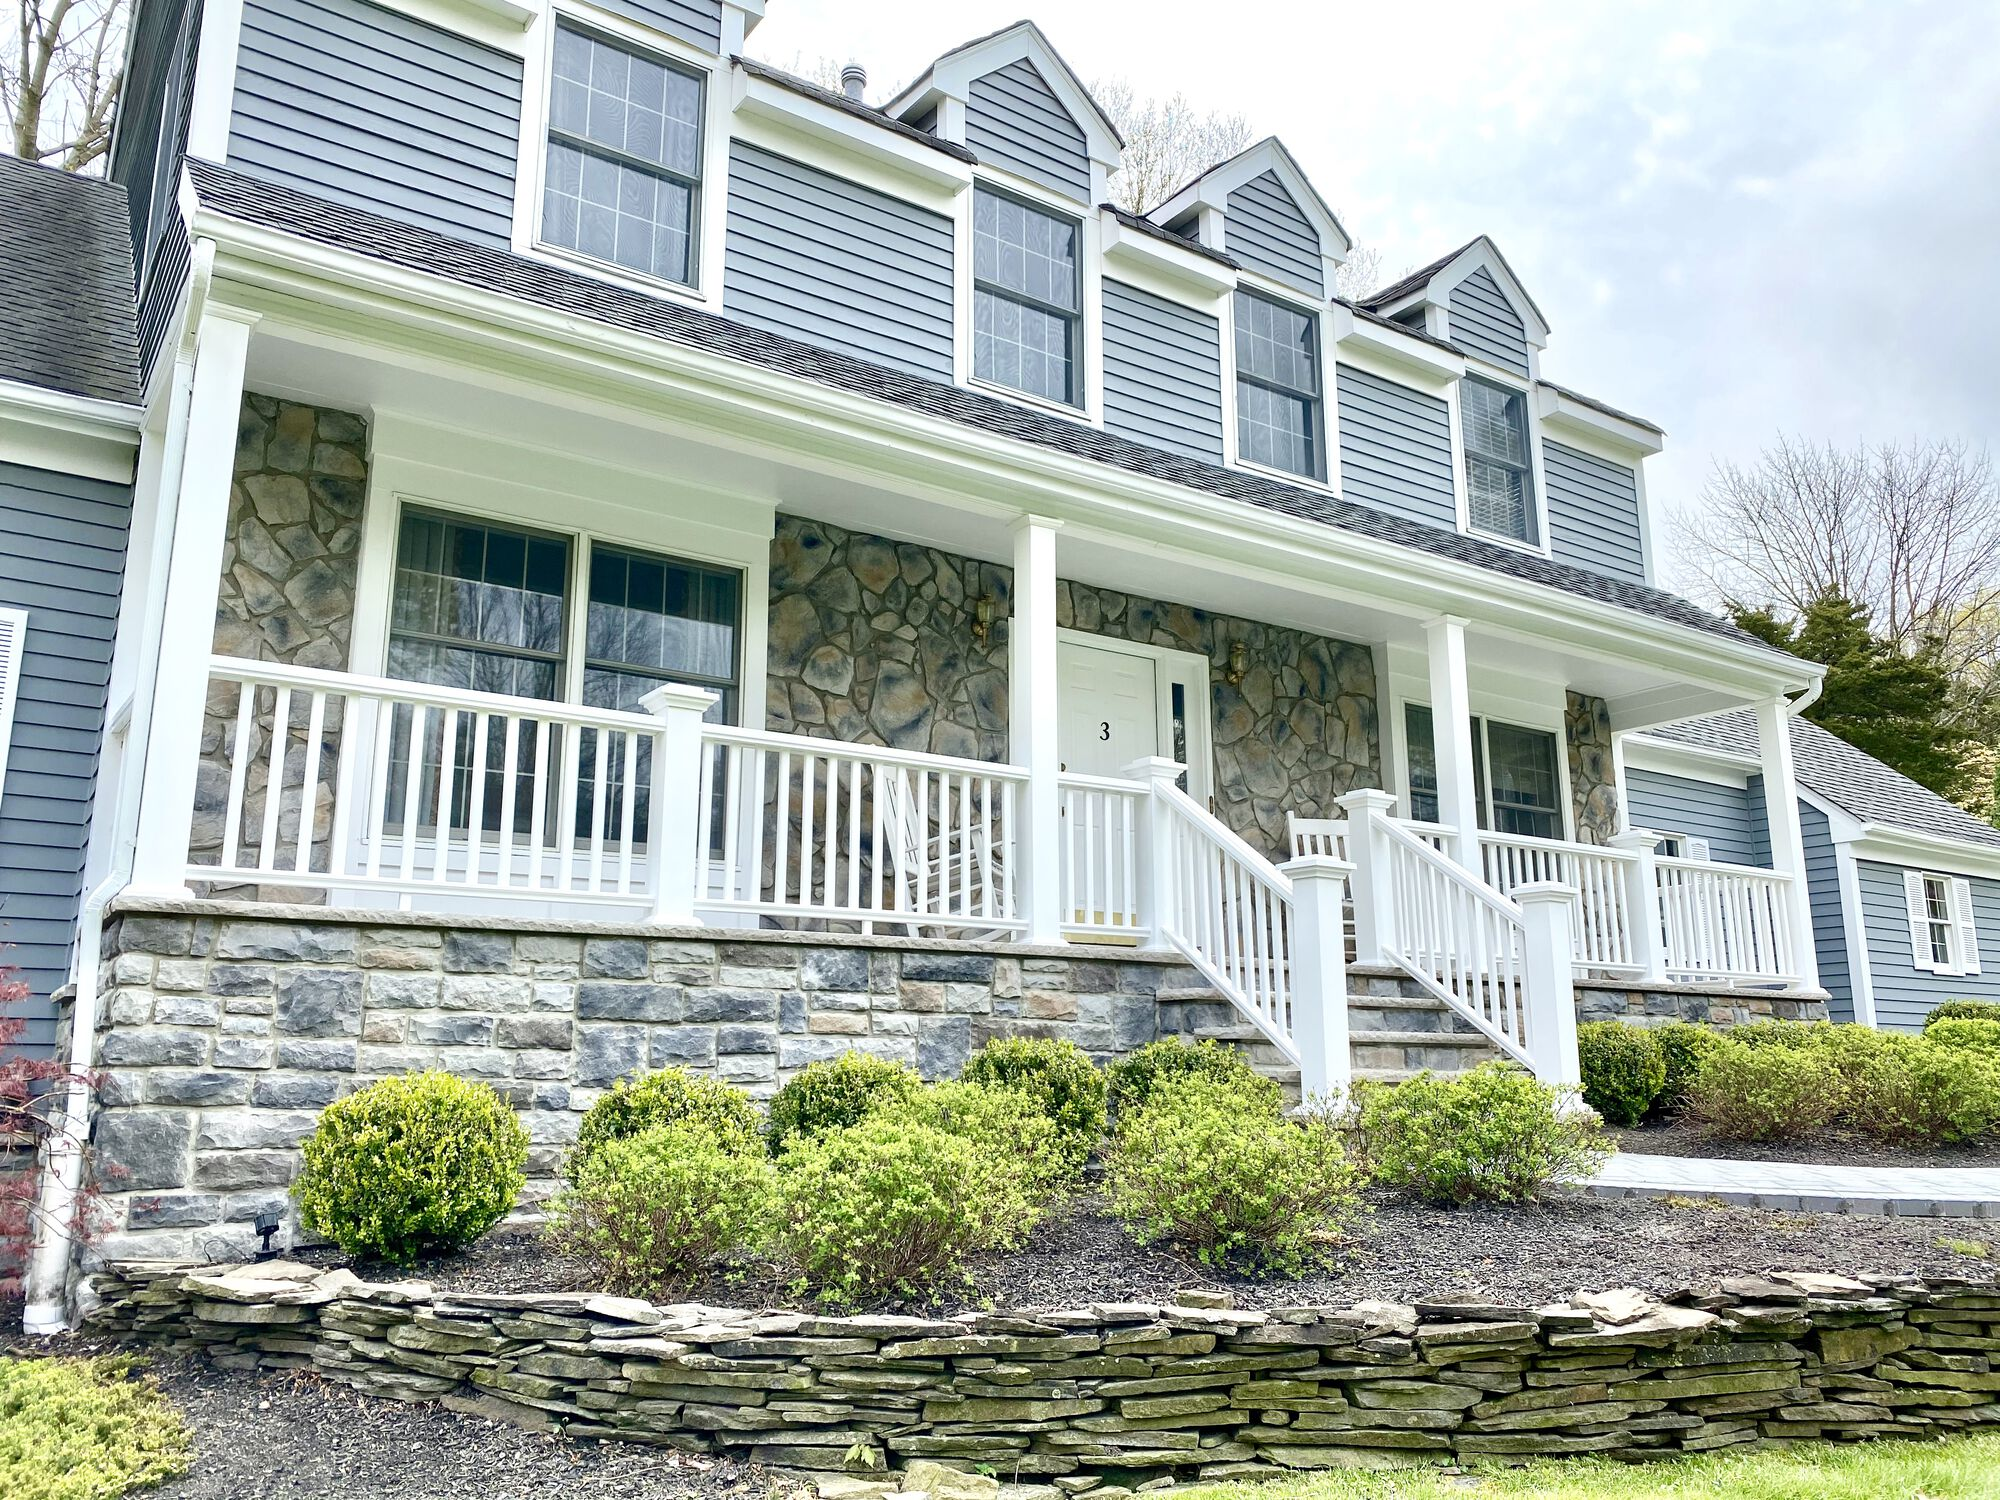 Porch Remodeling with Azek Trim and Boral Stone in Hillsborough, Somerset County NJ